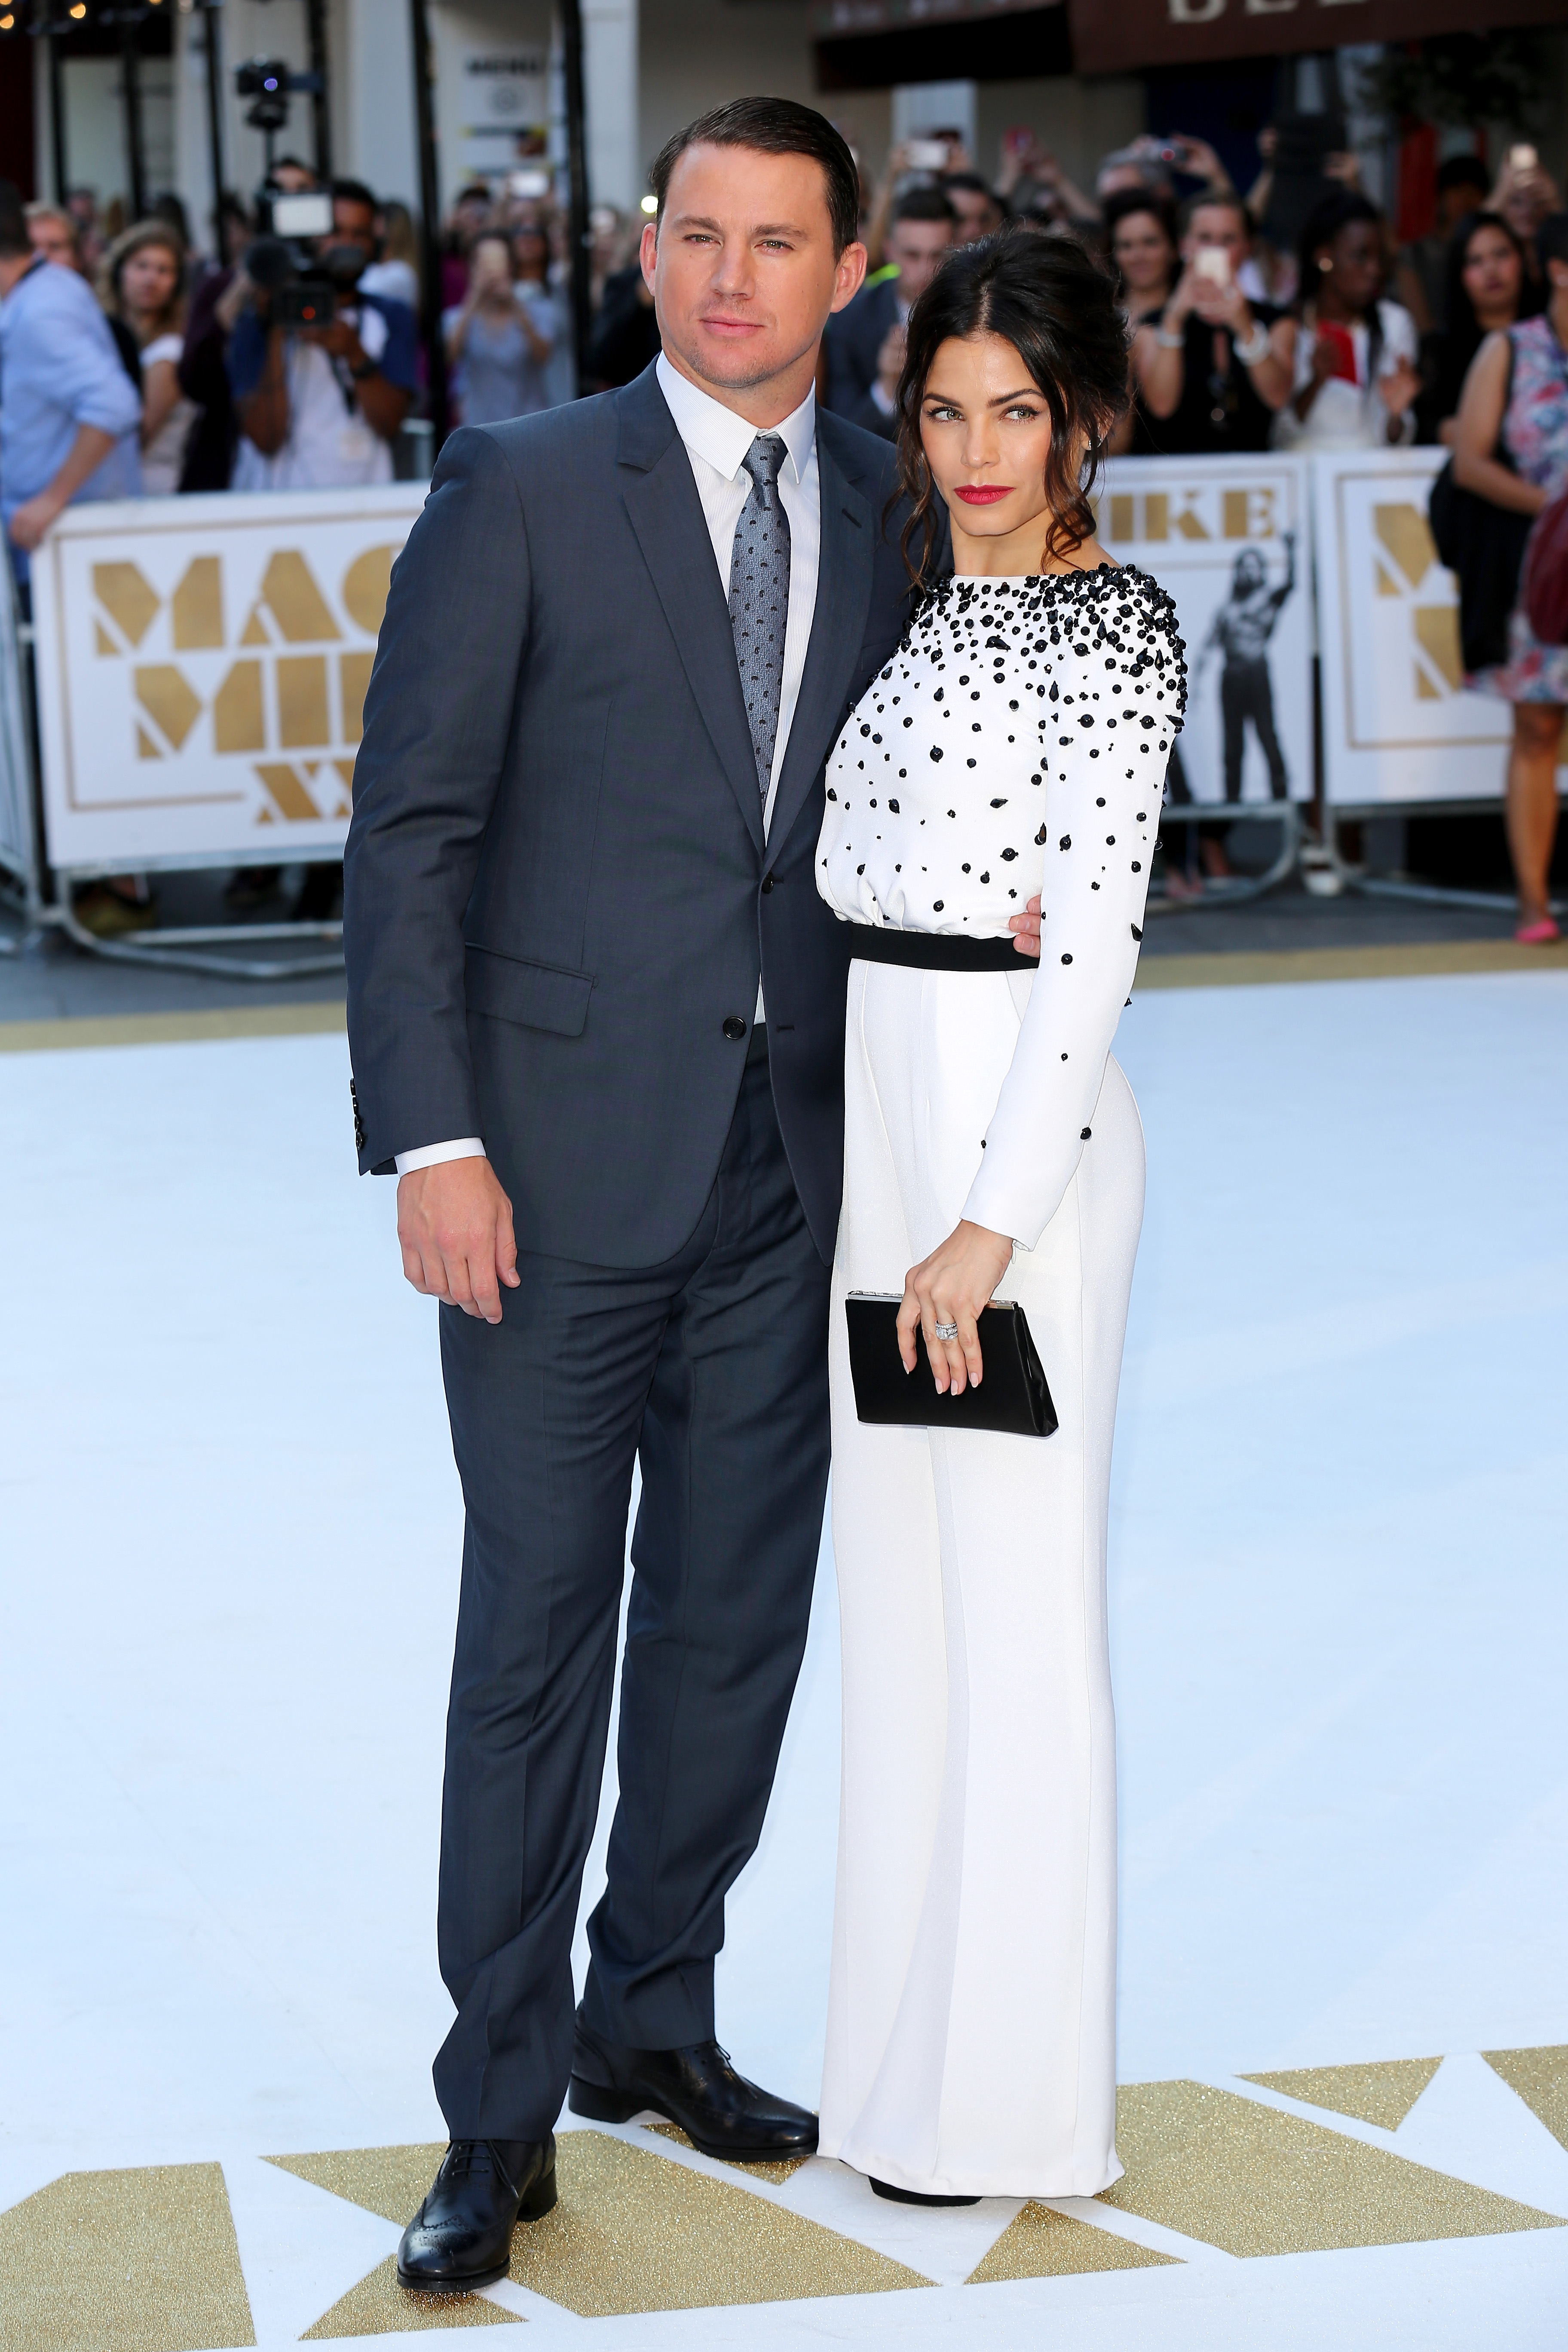 Channing Tatum and Jenna Dewan Tatum: Odd things about their marriage